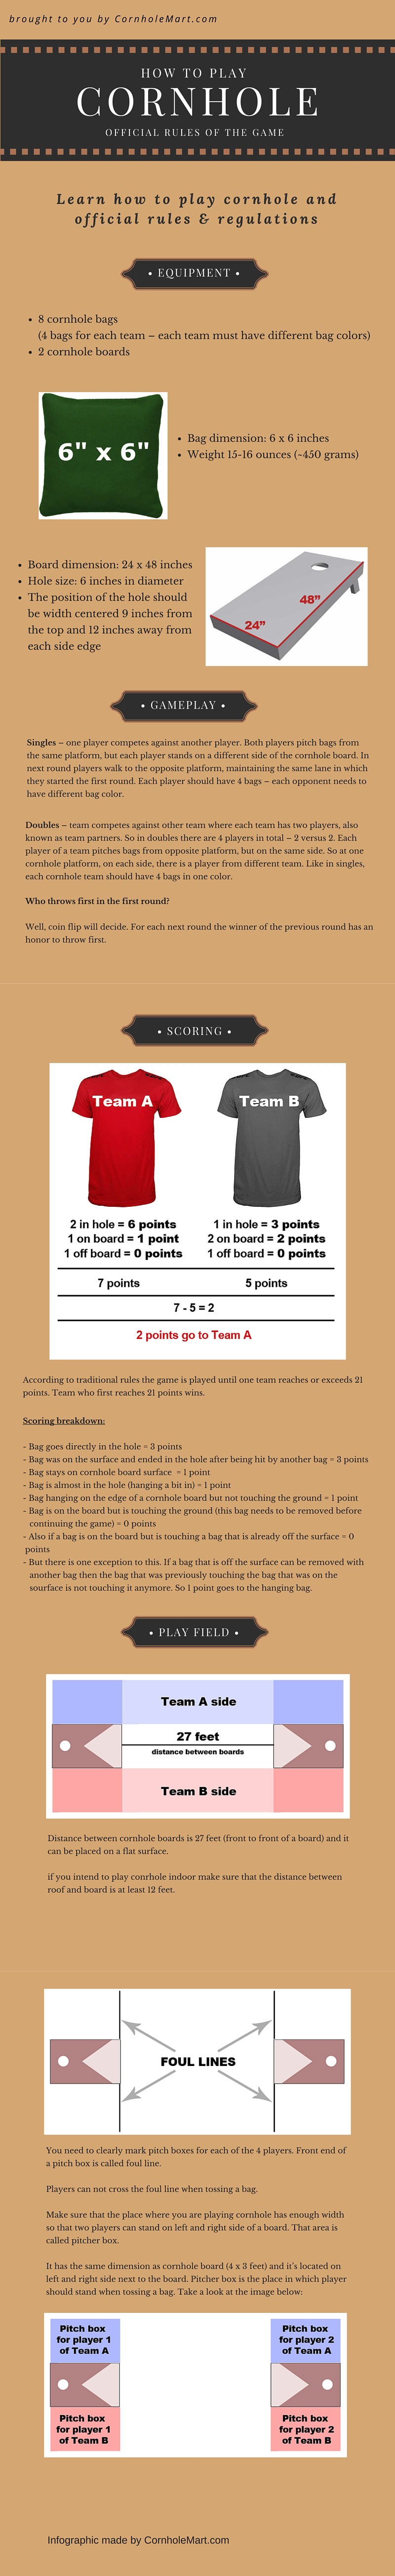 how to play cornhole infographic